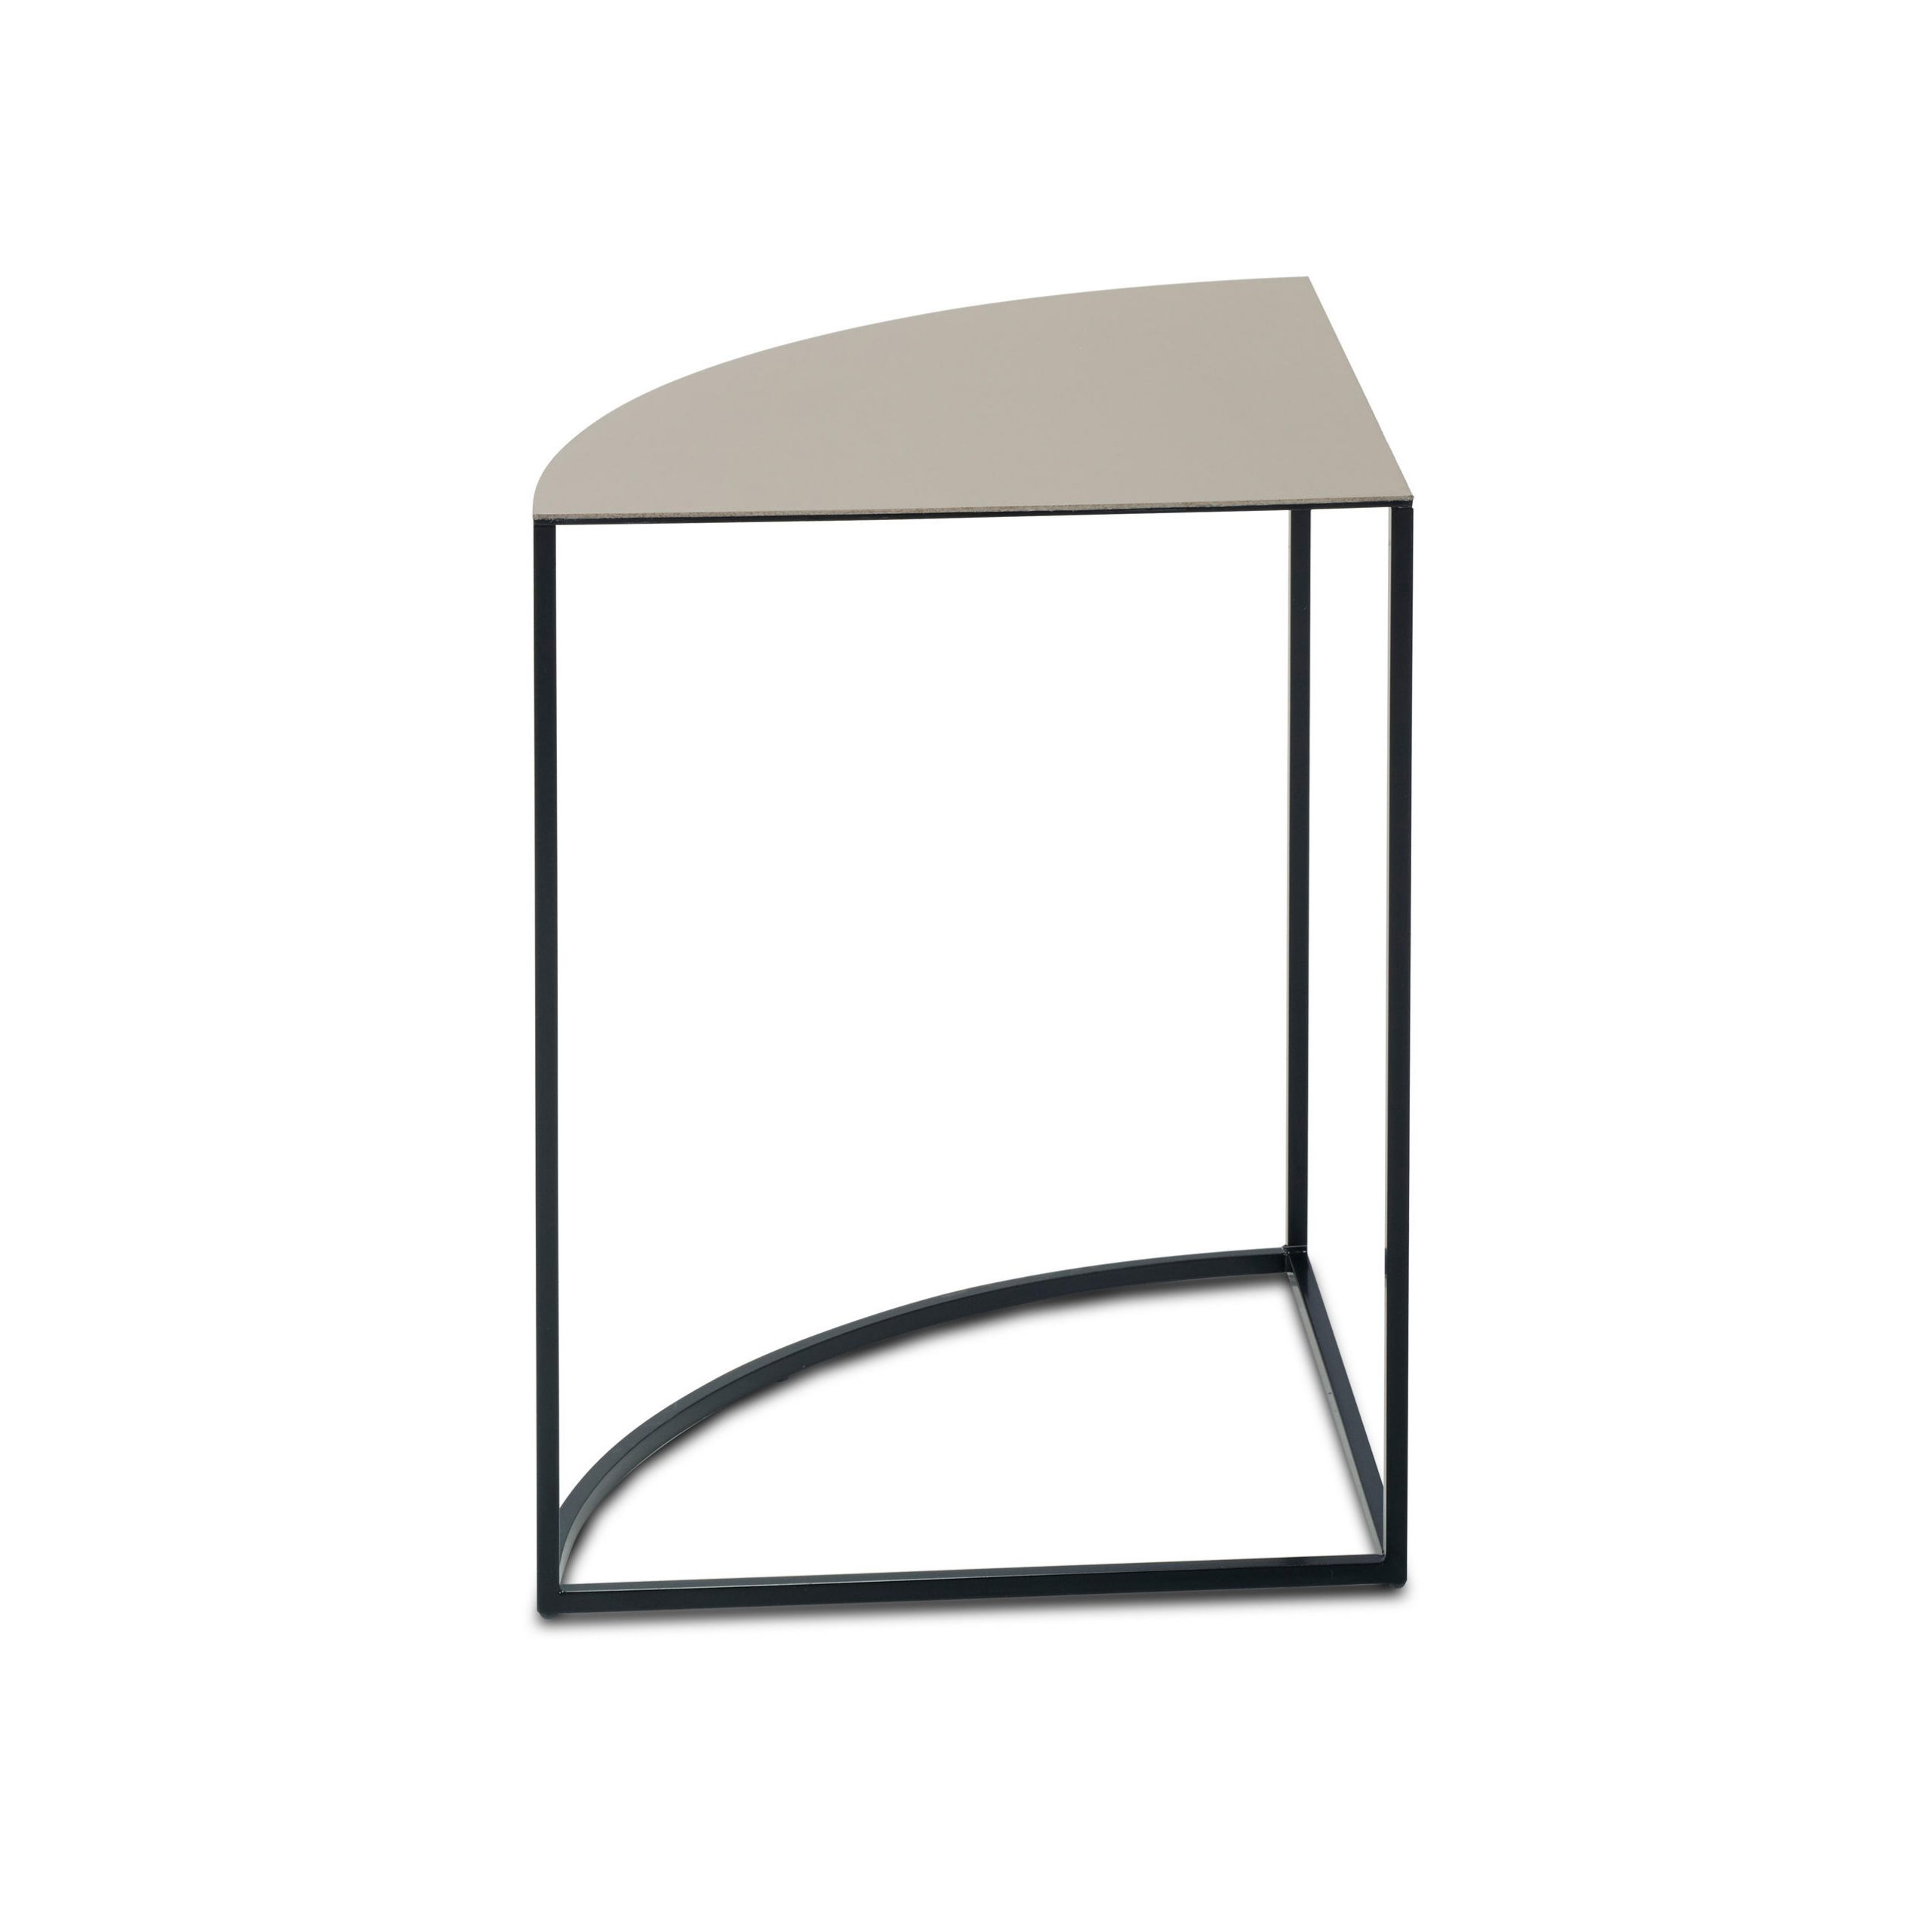 Preferred Ascot Jr T938 – Side Tables From Jori (View 13 of 25)